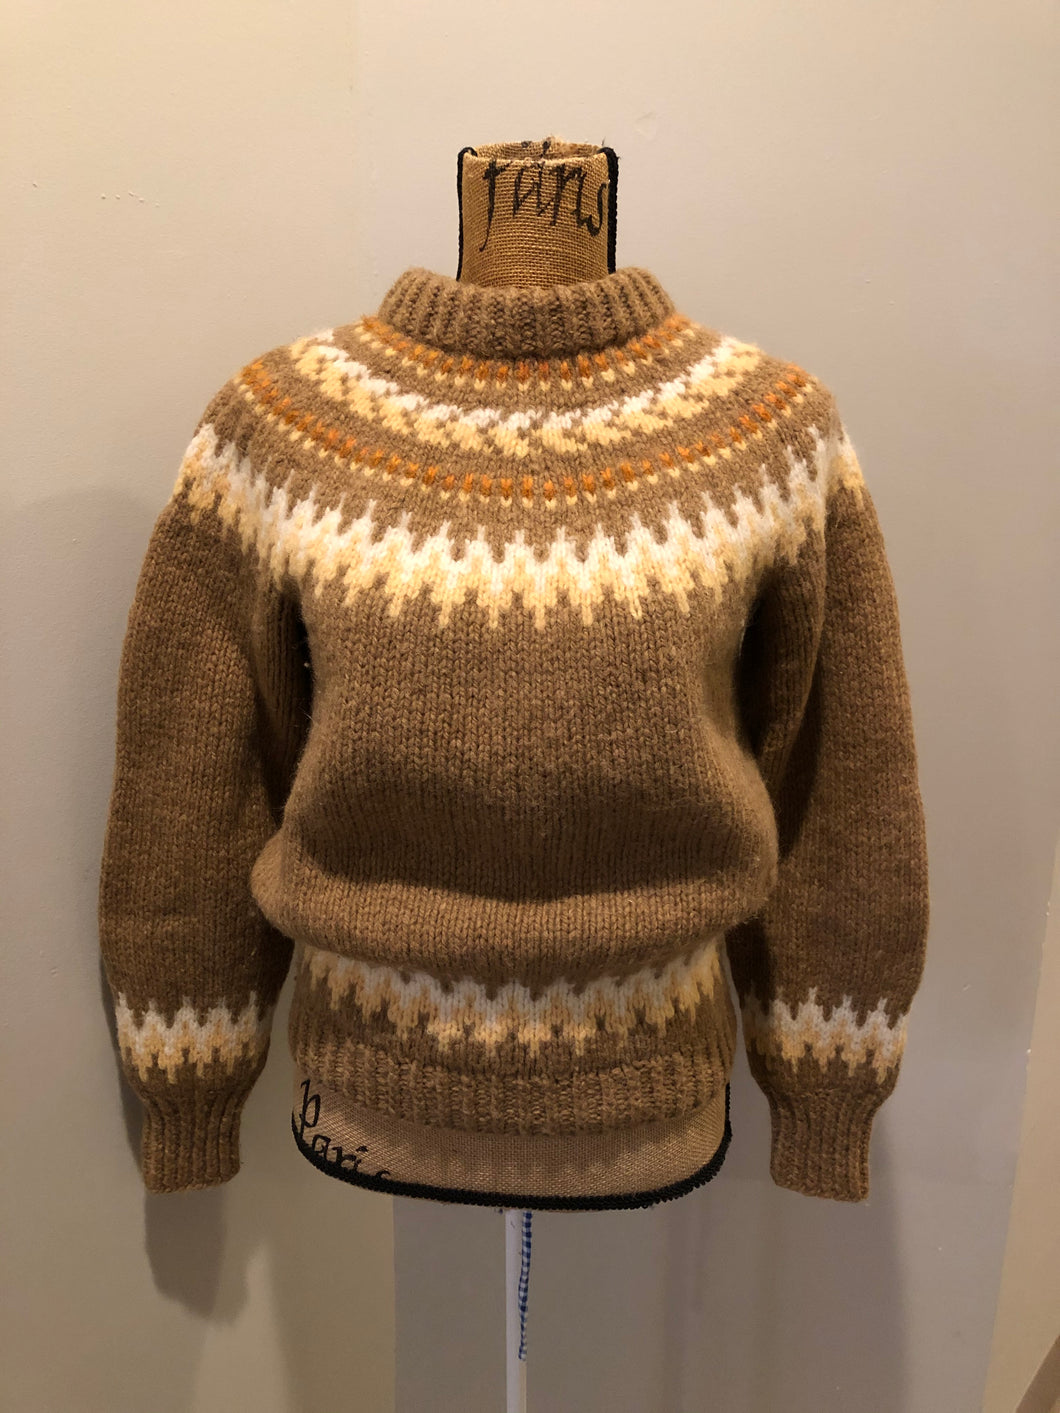 Kingspier Vintage - Handknit wool lopi sweater with browns, cream and yellow design. Made in Scotland. Size small/ XS.